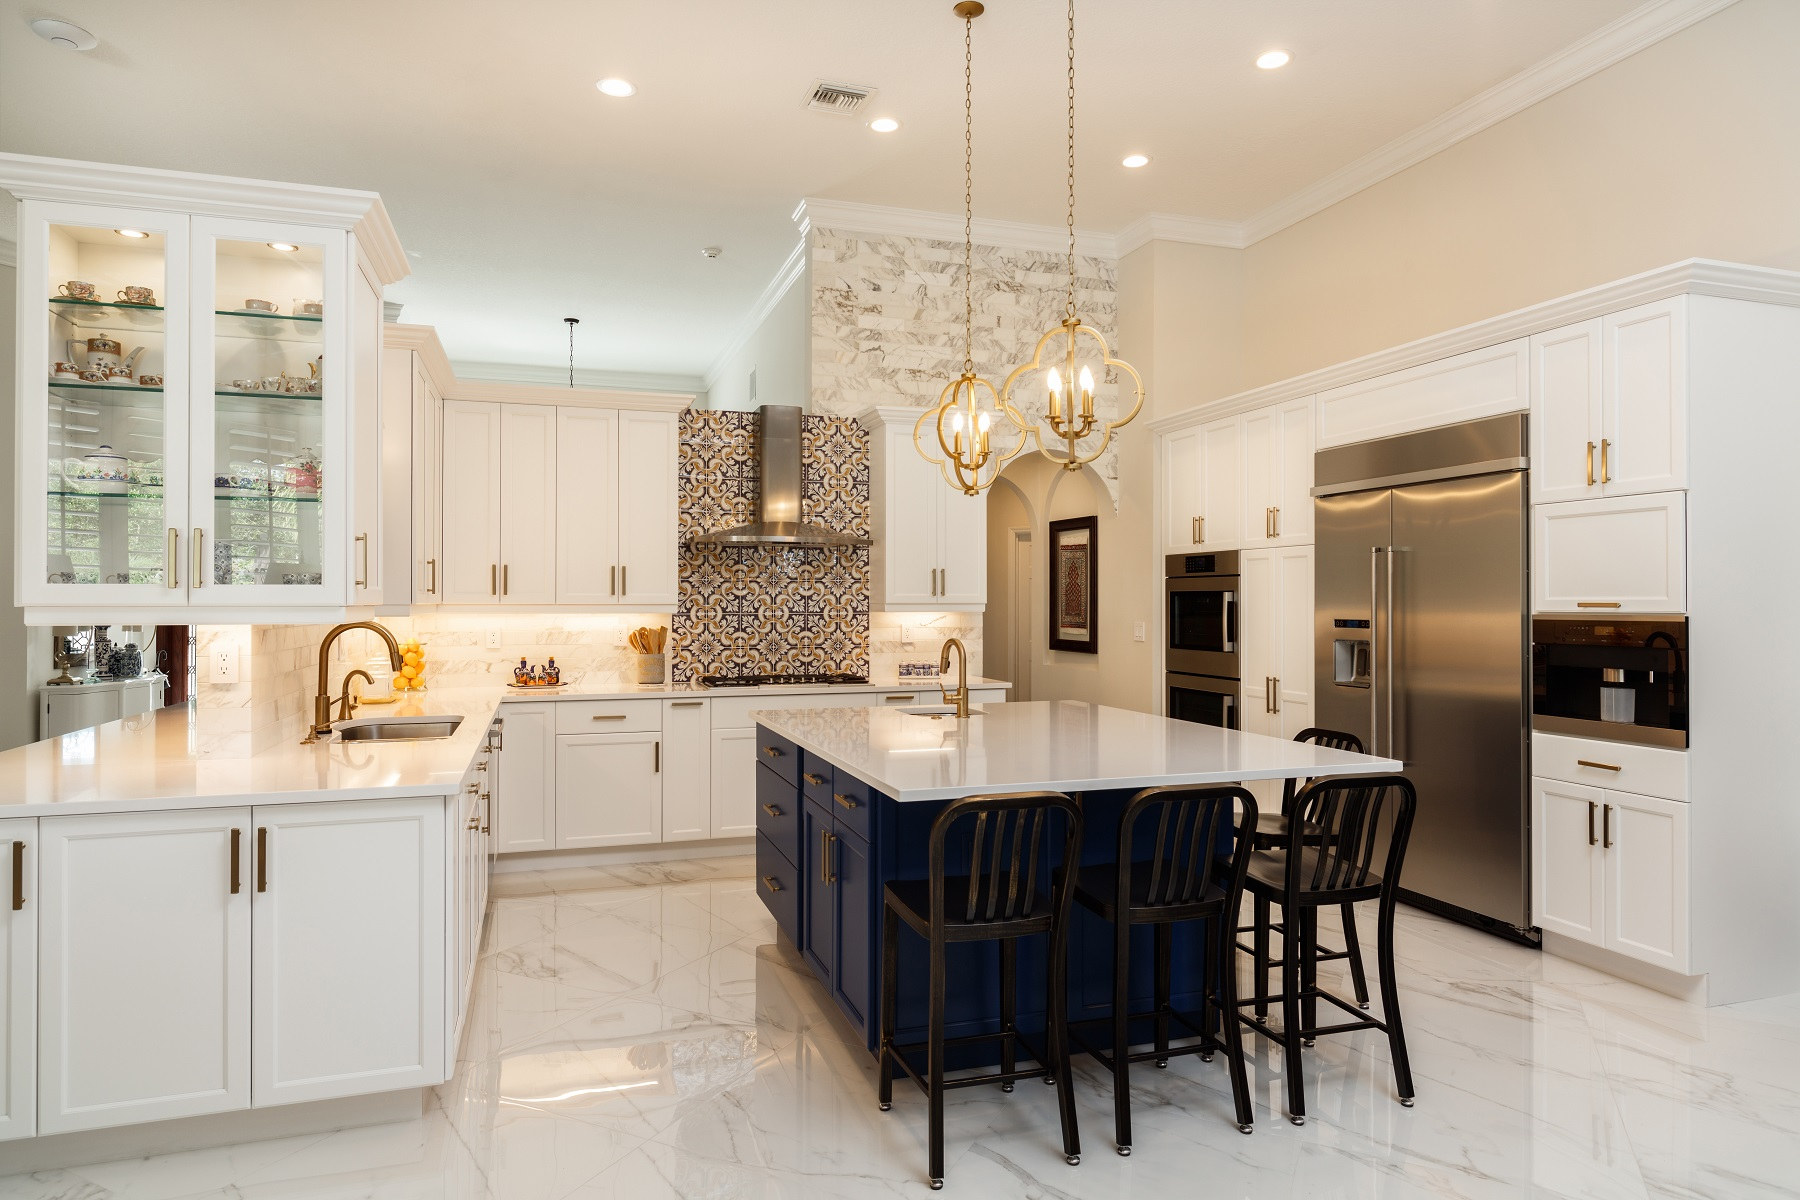 How To Go Ahead With Small Kitchen Renovations In Parramatta